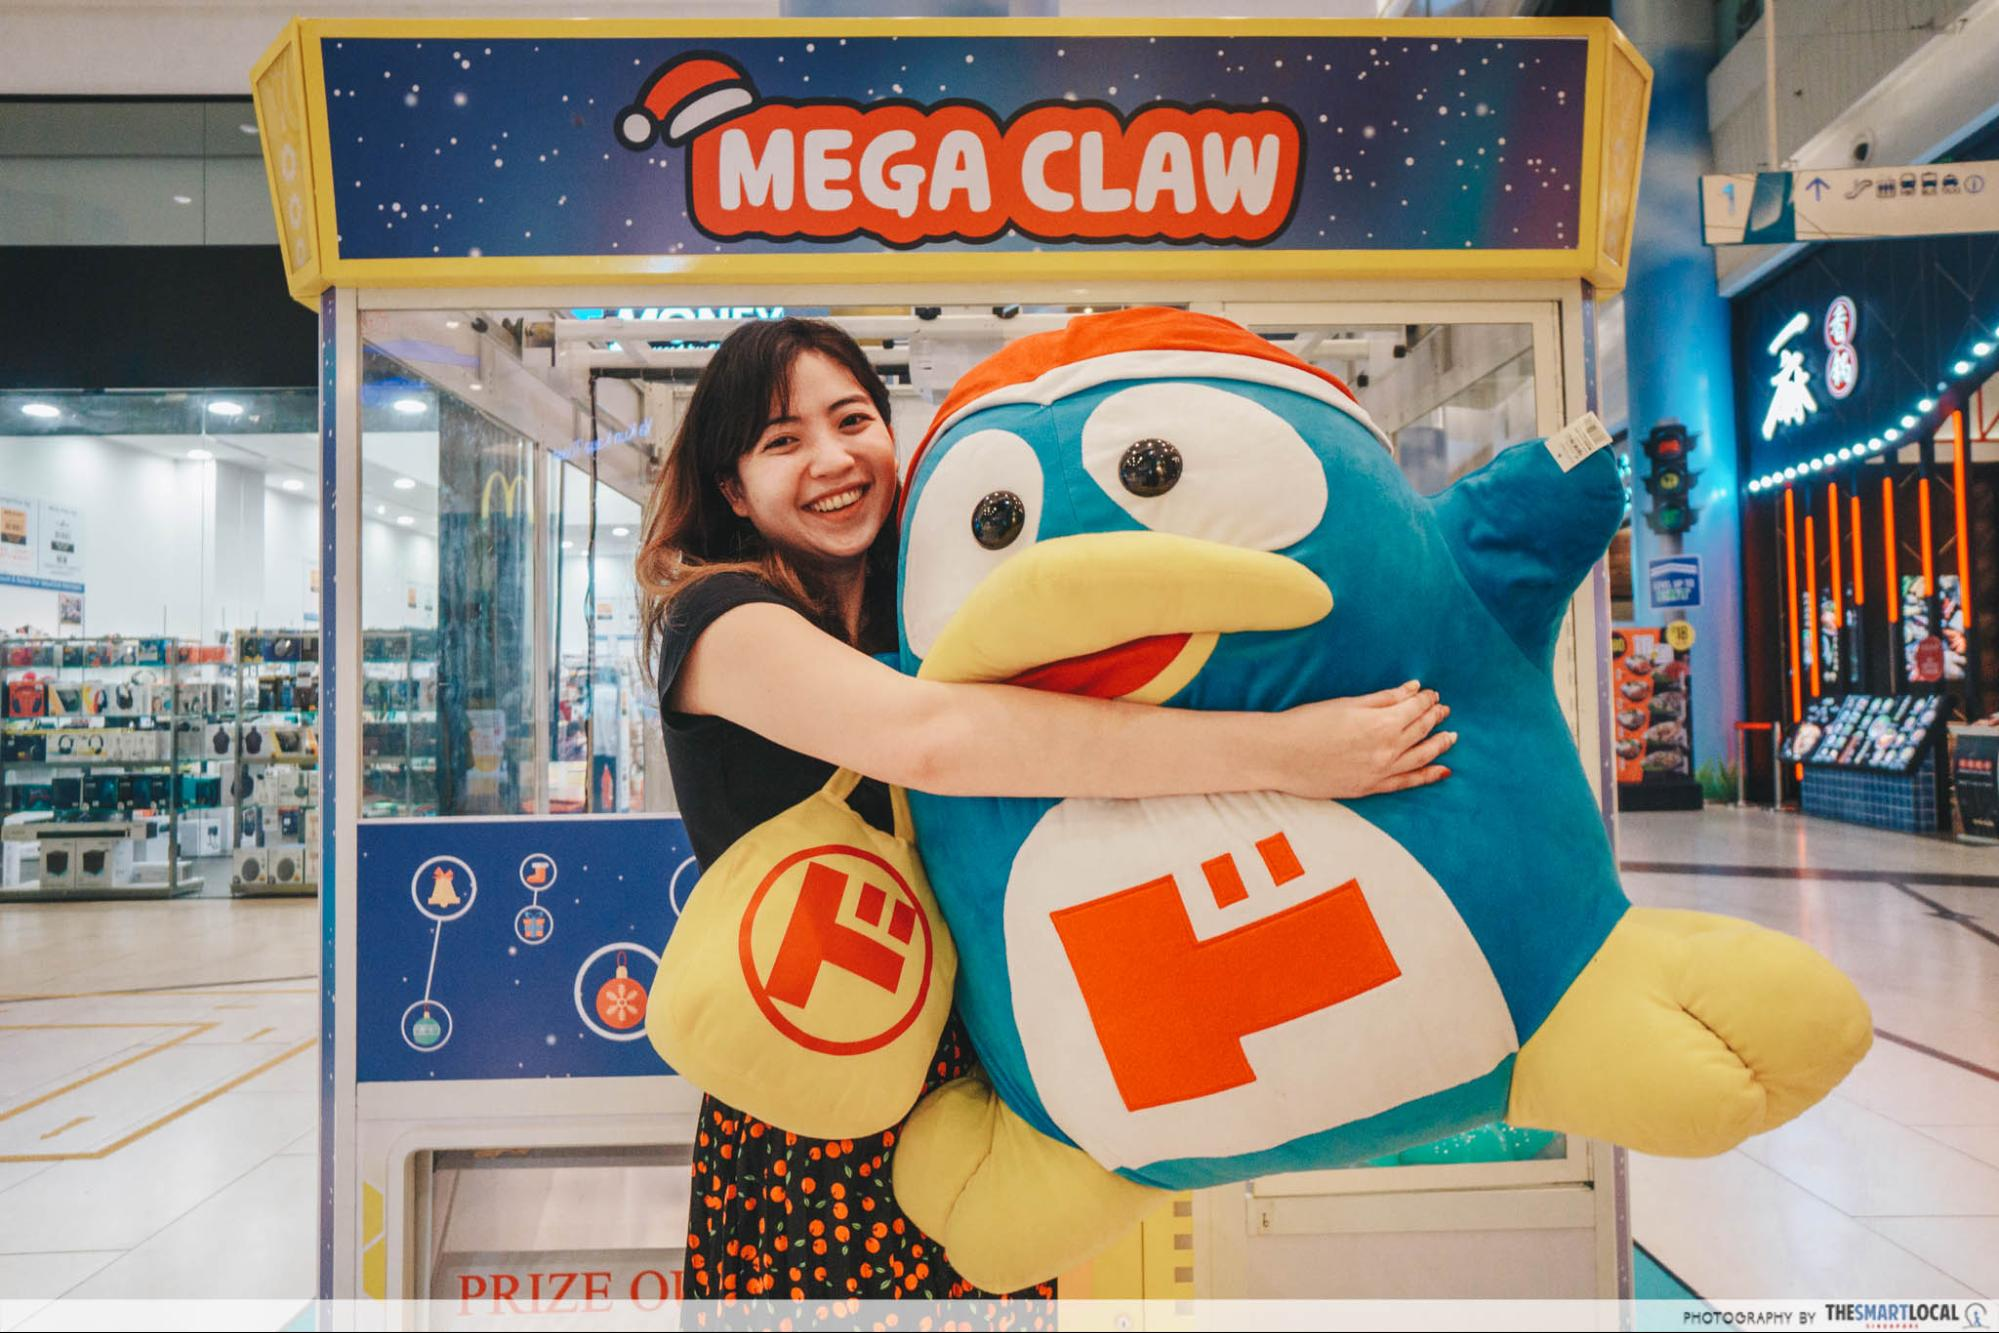 Donki claw machine